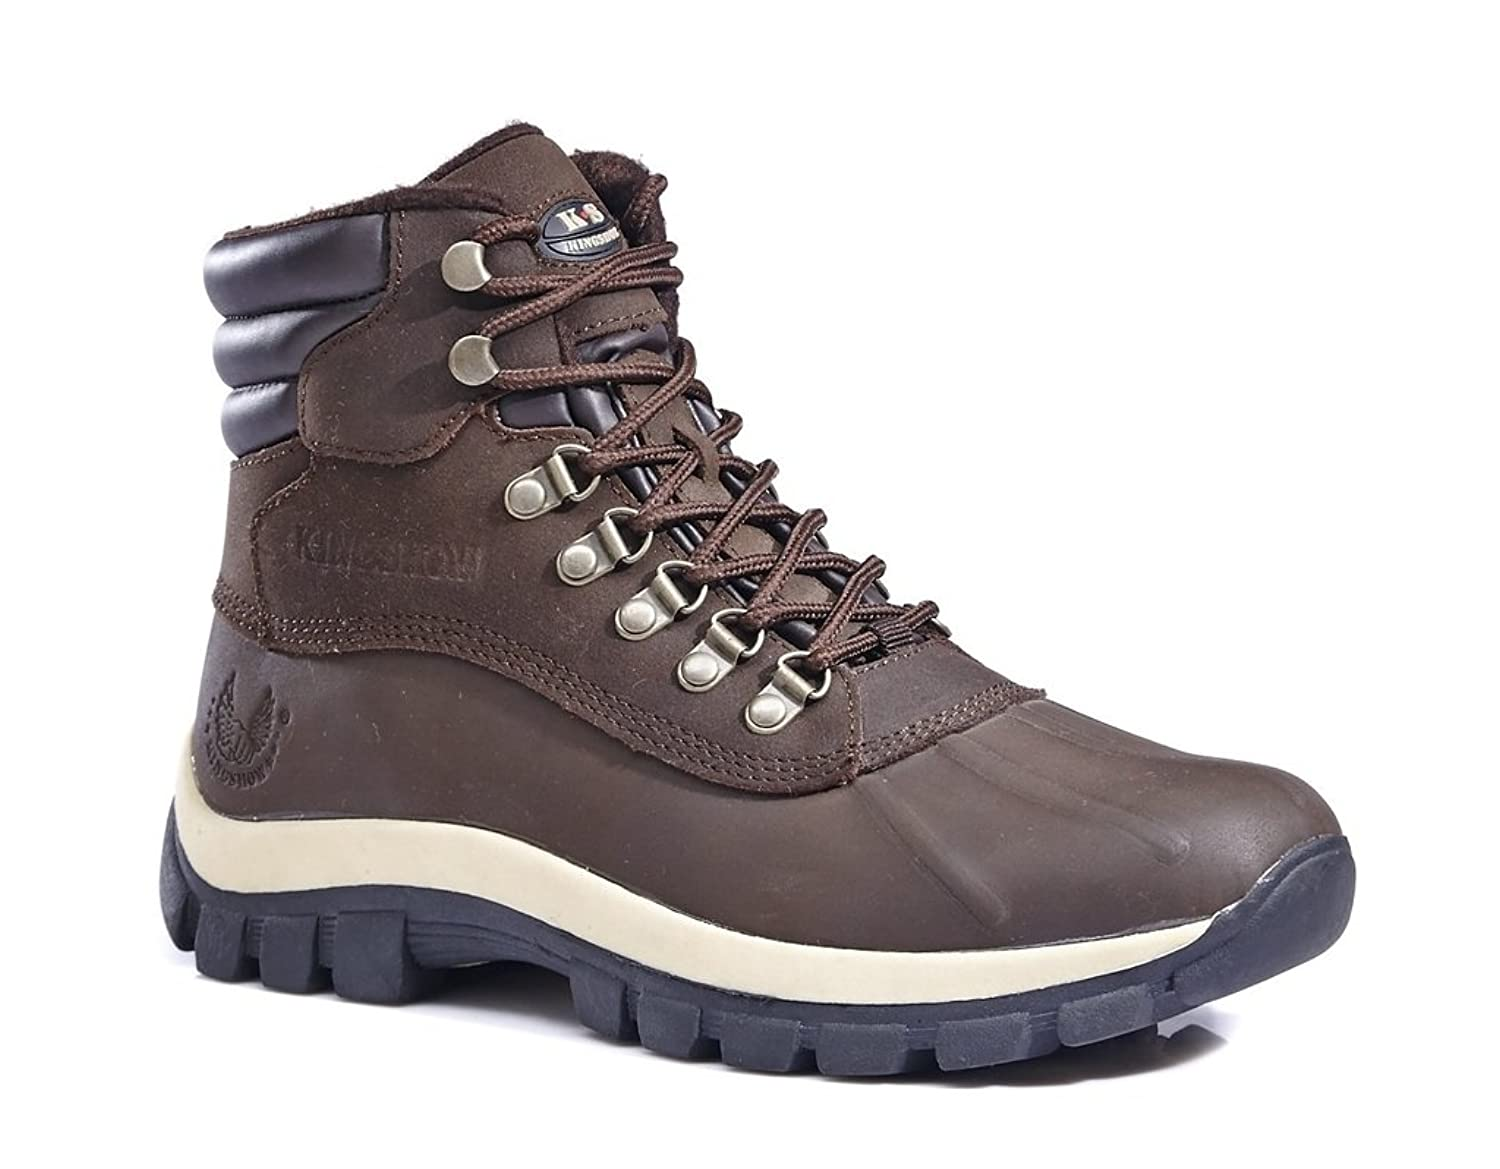 KINGSHOW Men's M0705 Water Proof Brown Leather Rubber Sole Winter Snow Boots 11 M US